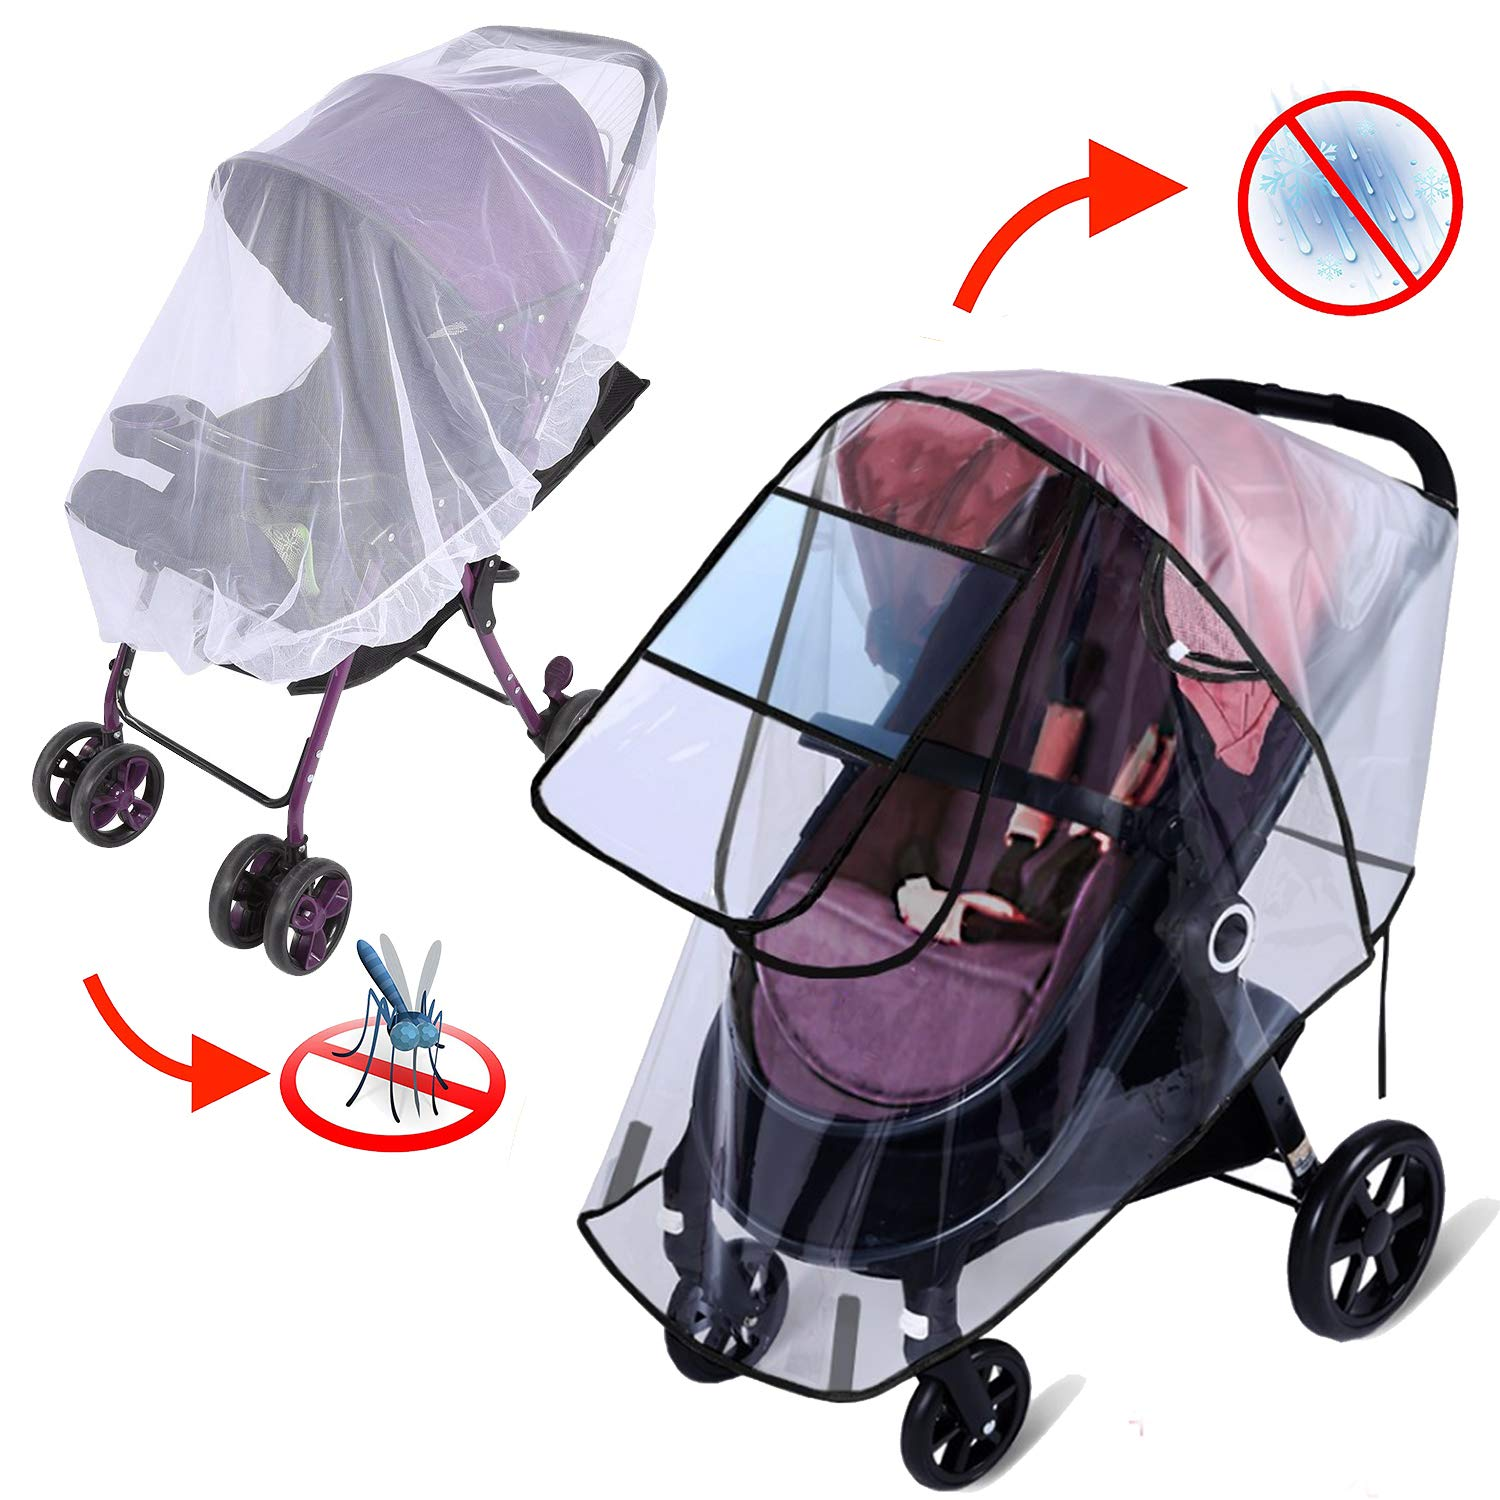 Rain Cover for Stroller - Mosquito Net(2-Piece Set), Apsung Universal Baby Travel Stroller Rain Cover Waterproof, Windproof Protection, Outdoor Use with Air Holes-Transparent